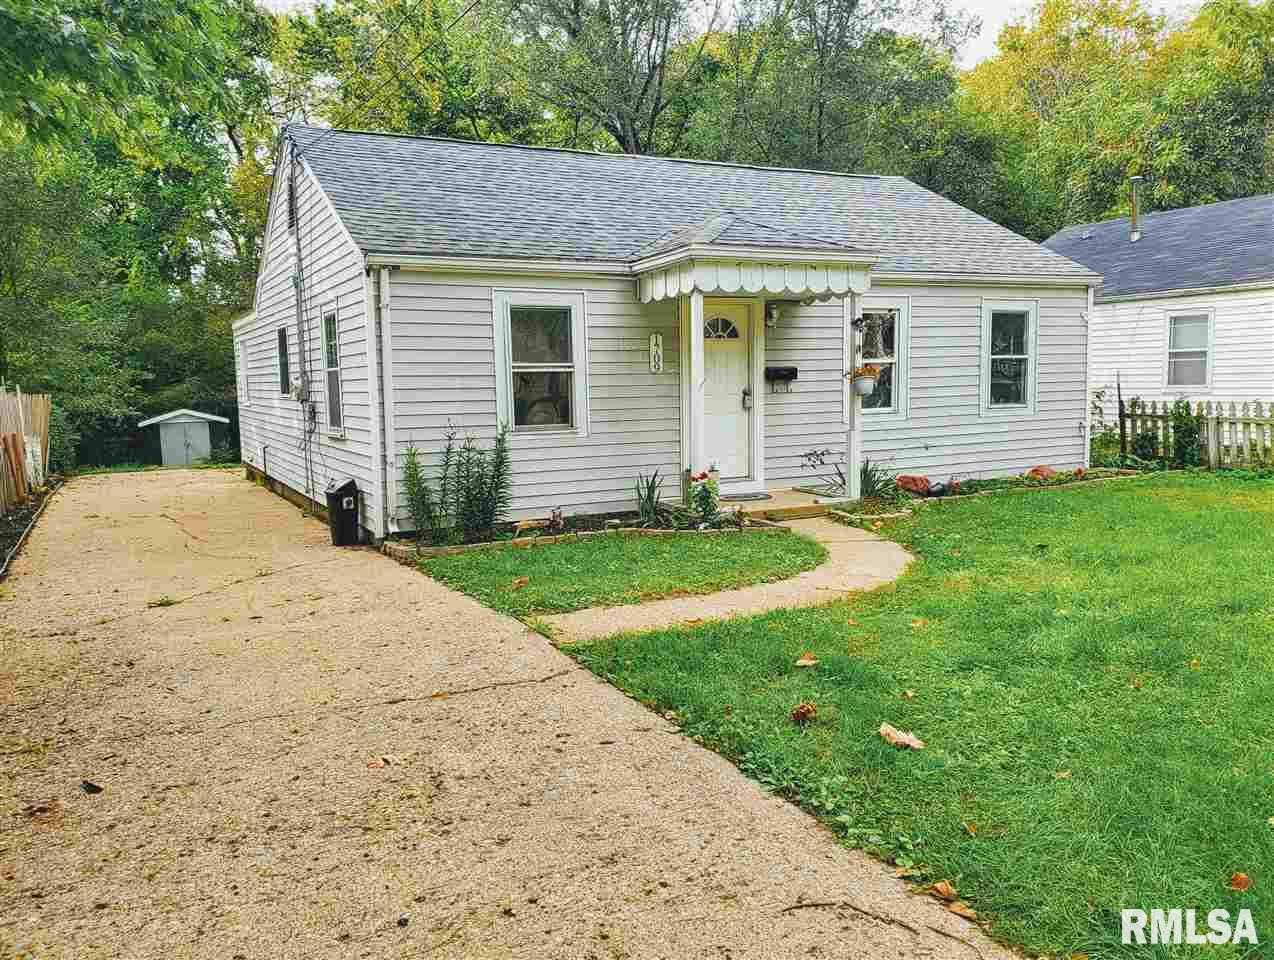 $39,500 - 3Br/2Ba -  for Sale in University Court, Peoria